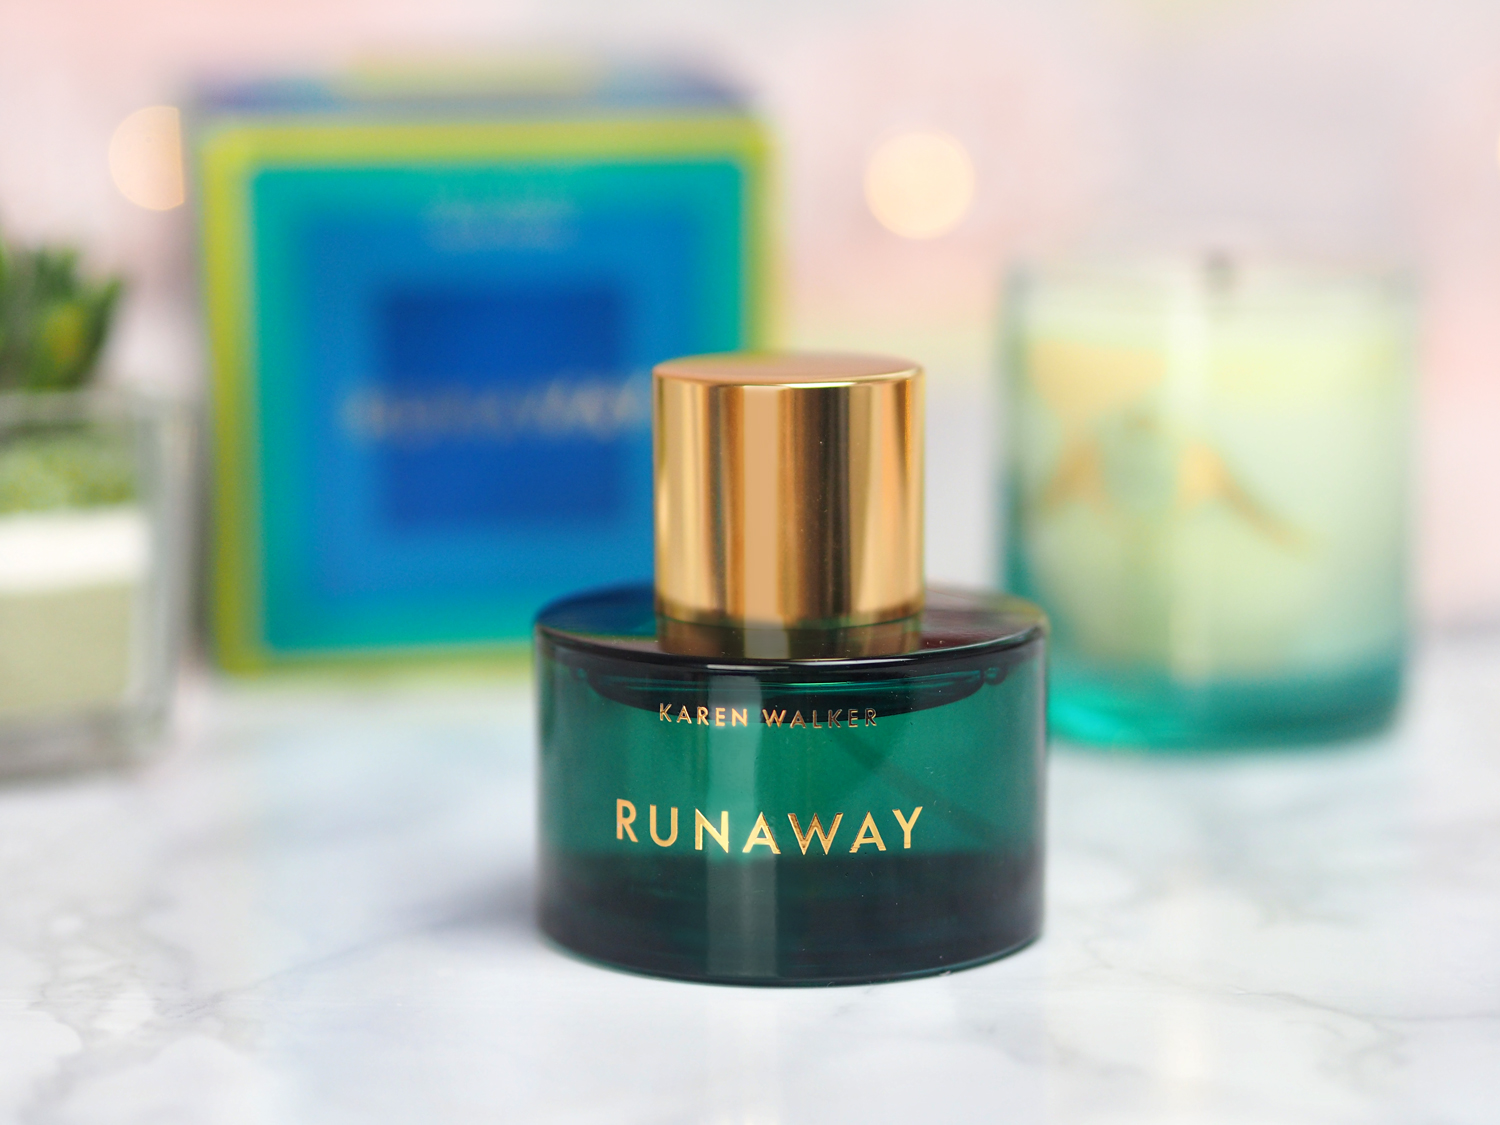 Karen Walker Runaway Review